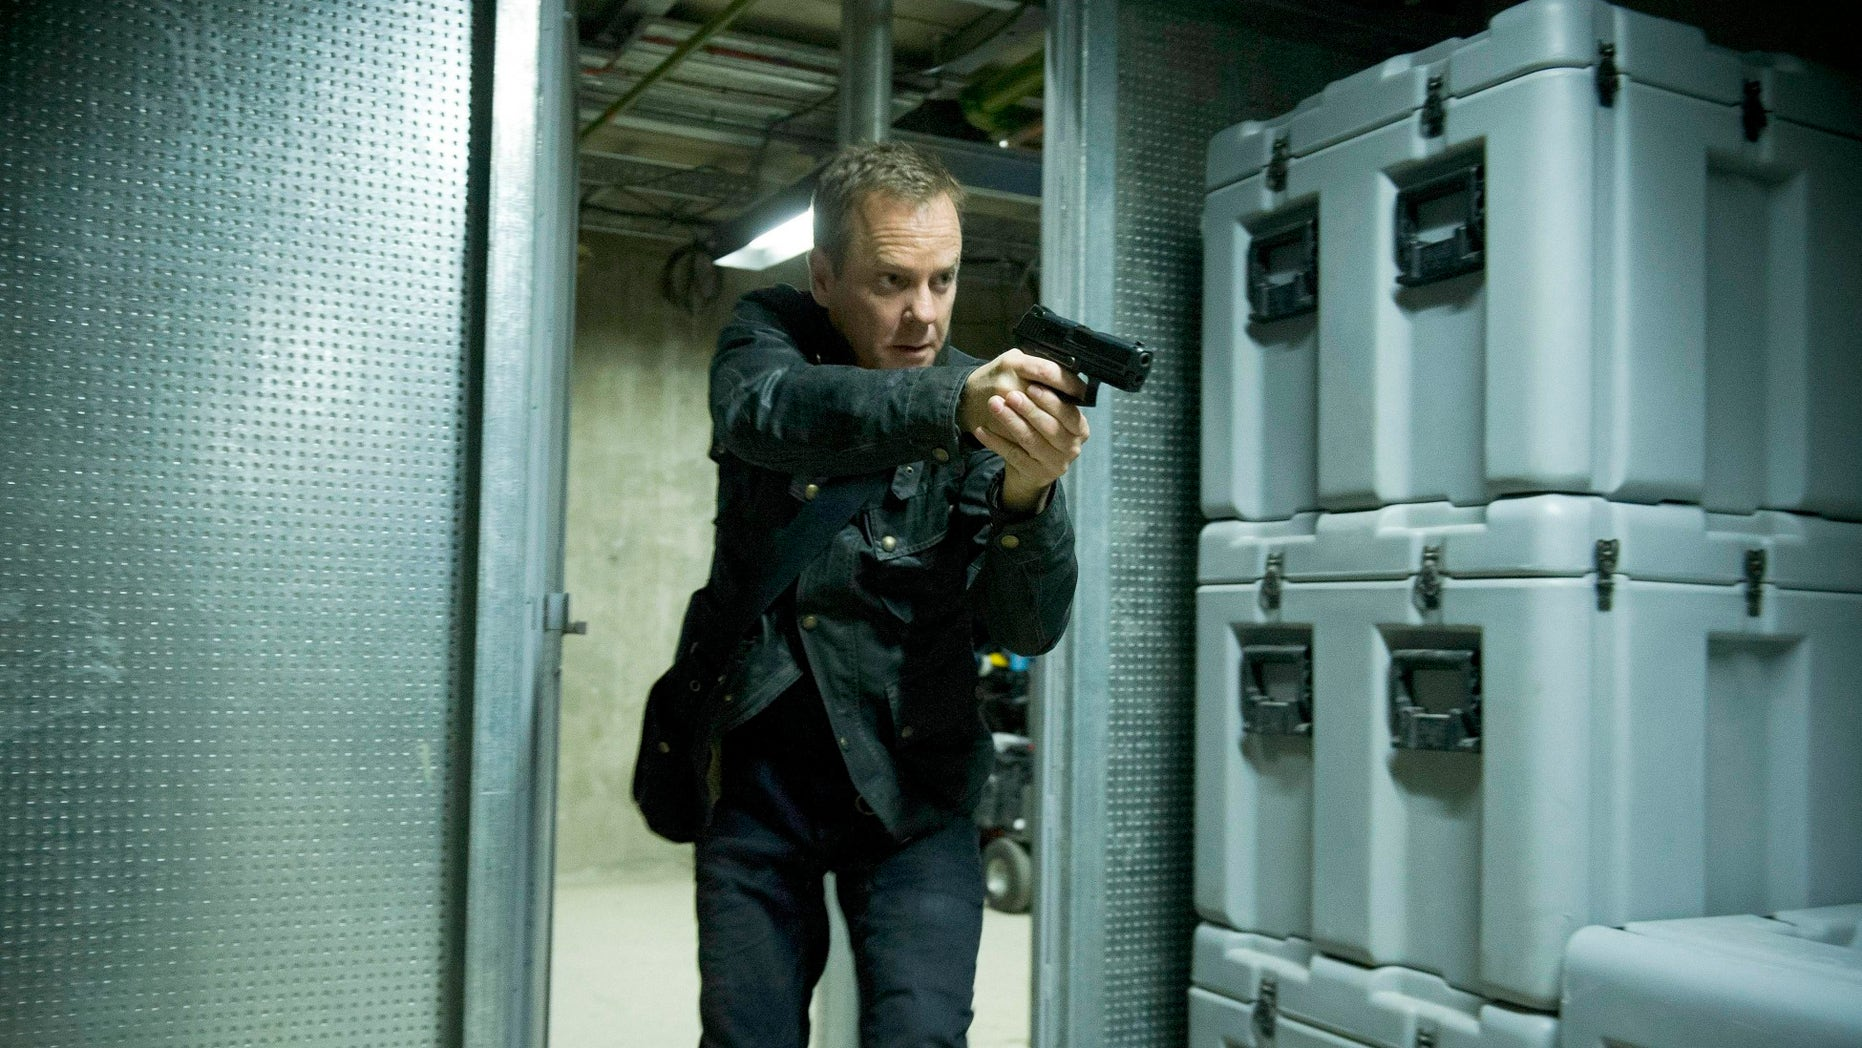 """24:  LIVE ANOTHER DAY:  Jack (Kiefer Sutherland) chases a suspect in the """"7:00 PM - 8:00 PM"""" episode of 24: LIVE ANOTHER DAY airing Monday, June 23 (9:00-10:00 PM ET/PT) on FOX.  ©2014 Fox Broadcasting Co.  Cr:  Chris Raphael/FOX"""